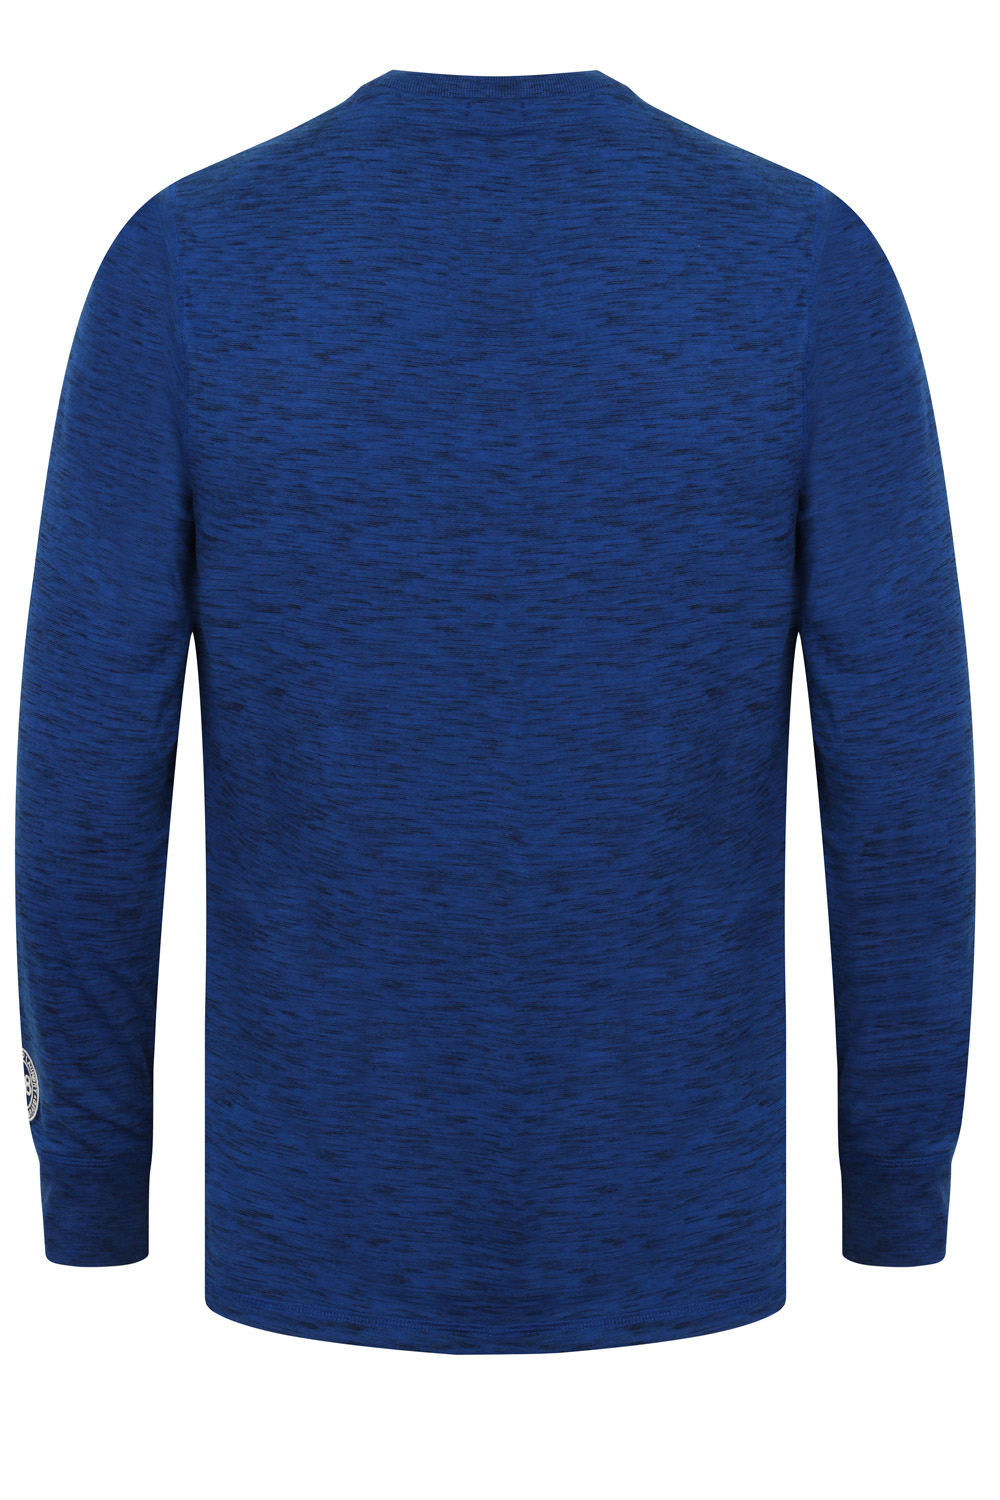 Tokyo Laundry Mens Harper Cove Long Sleeve Top Injection Dye Jersey T-Shirt